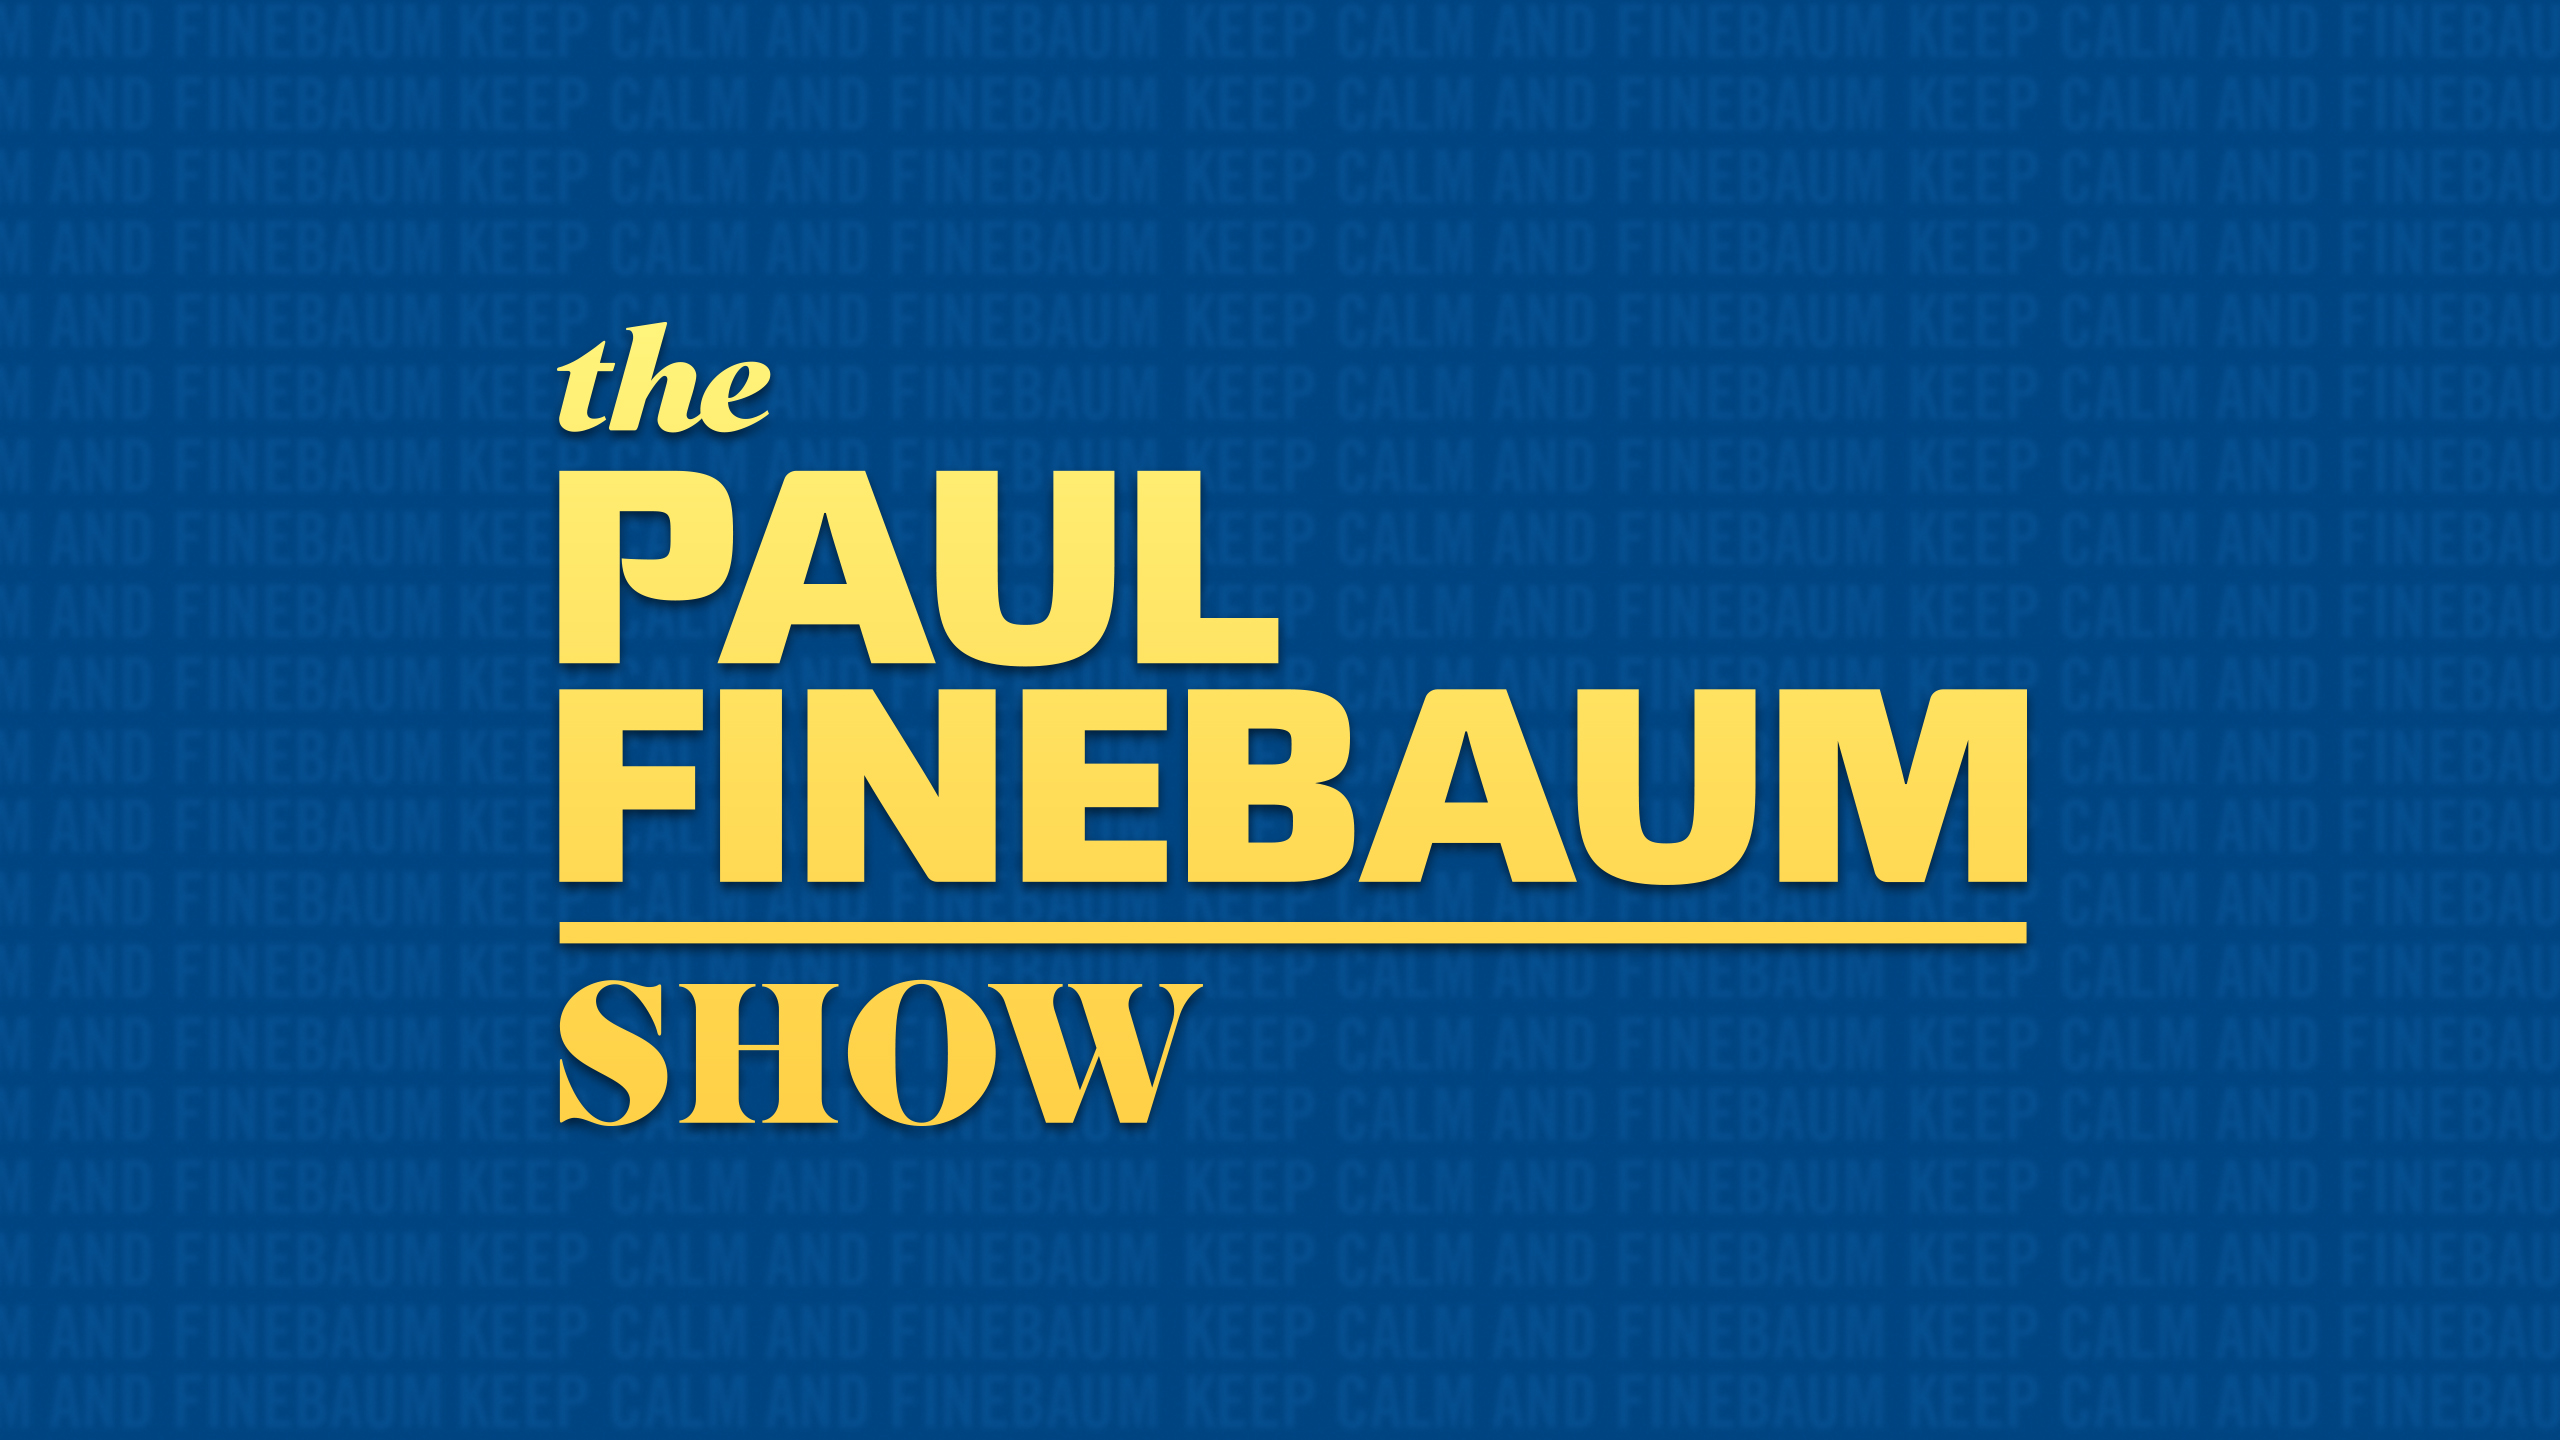 Mon, 9/17 - The Paul Finebaum Show Presented by Regions Bank